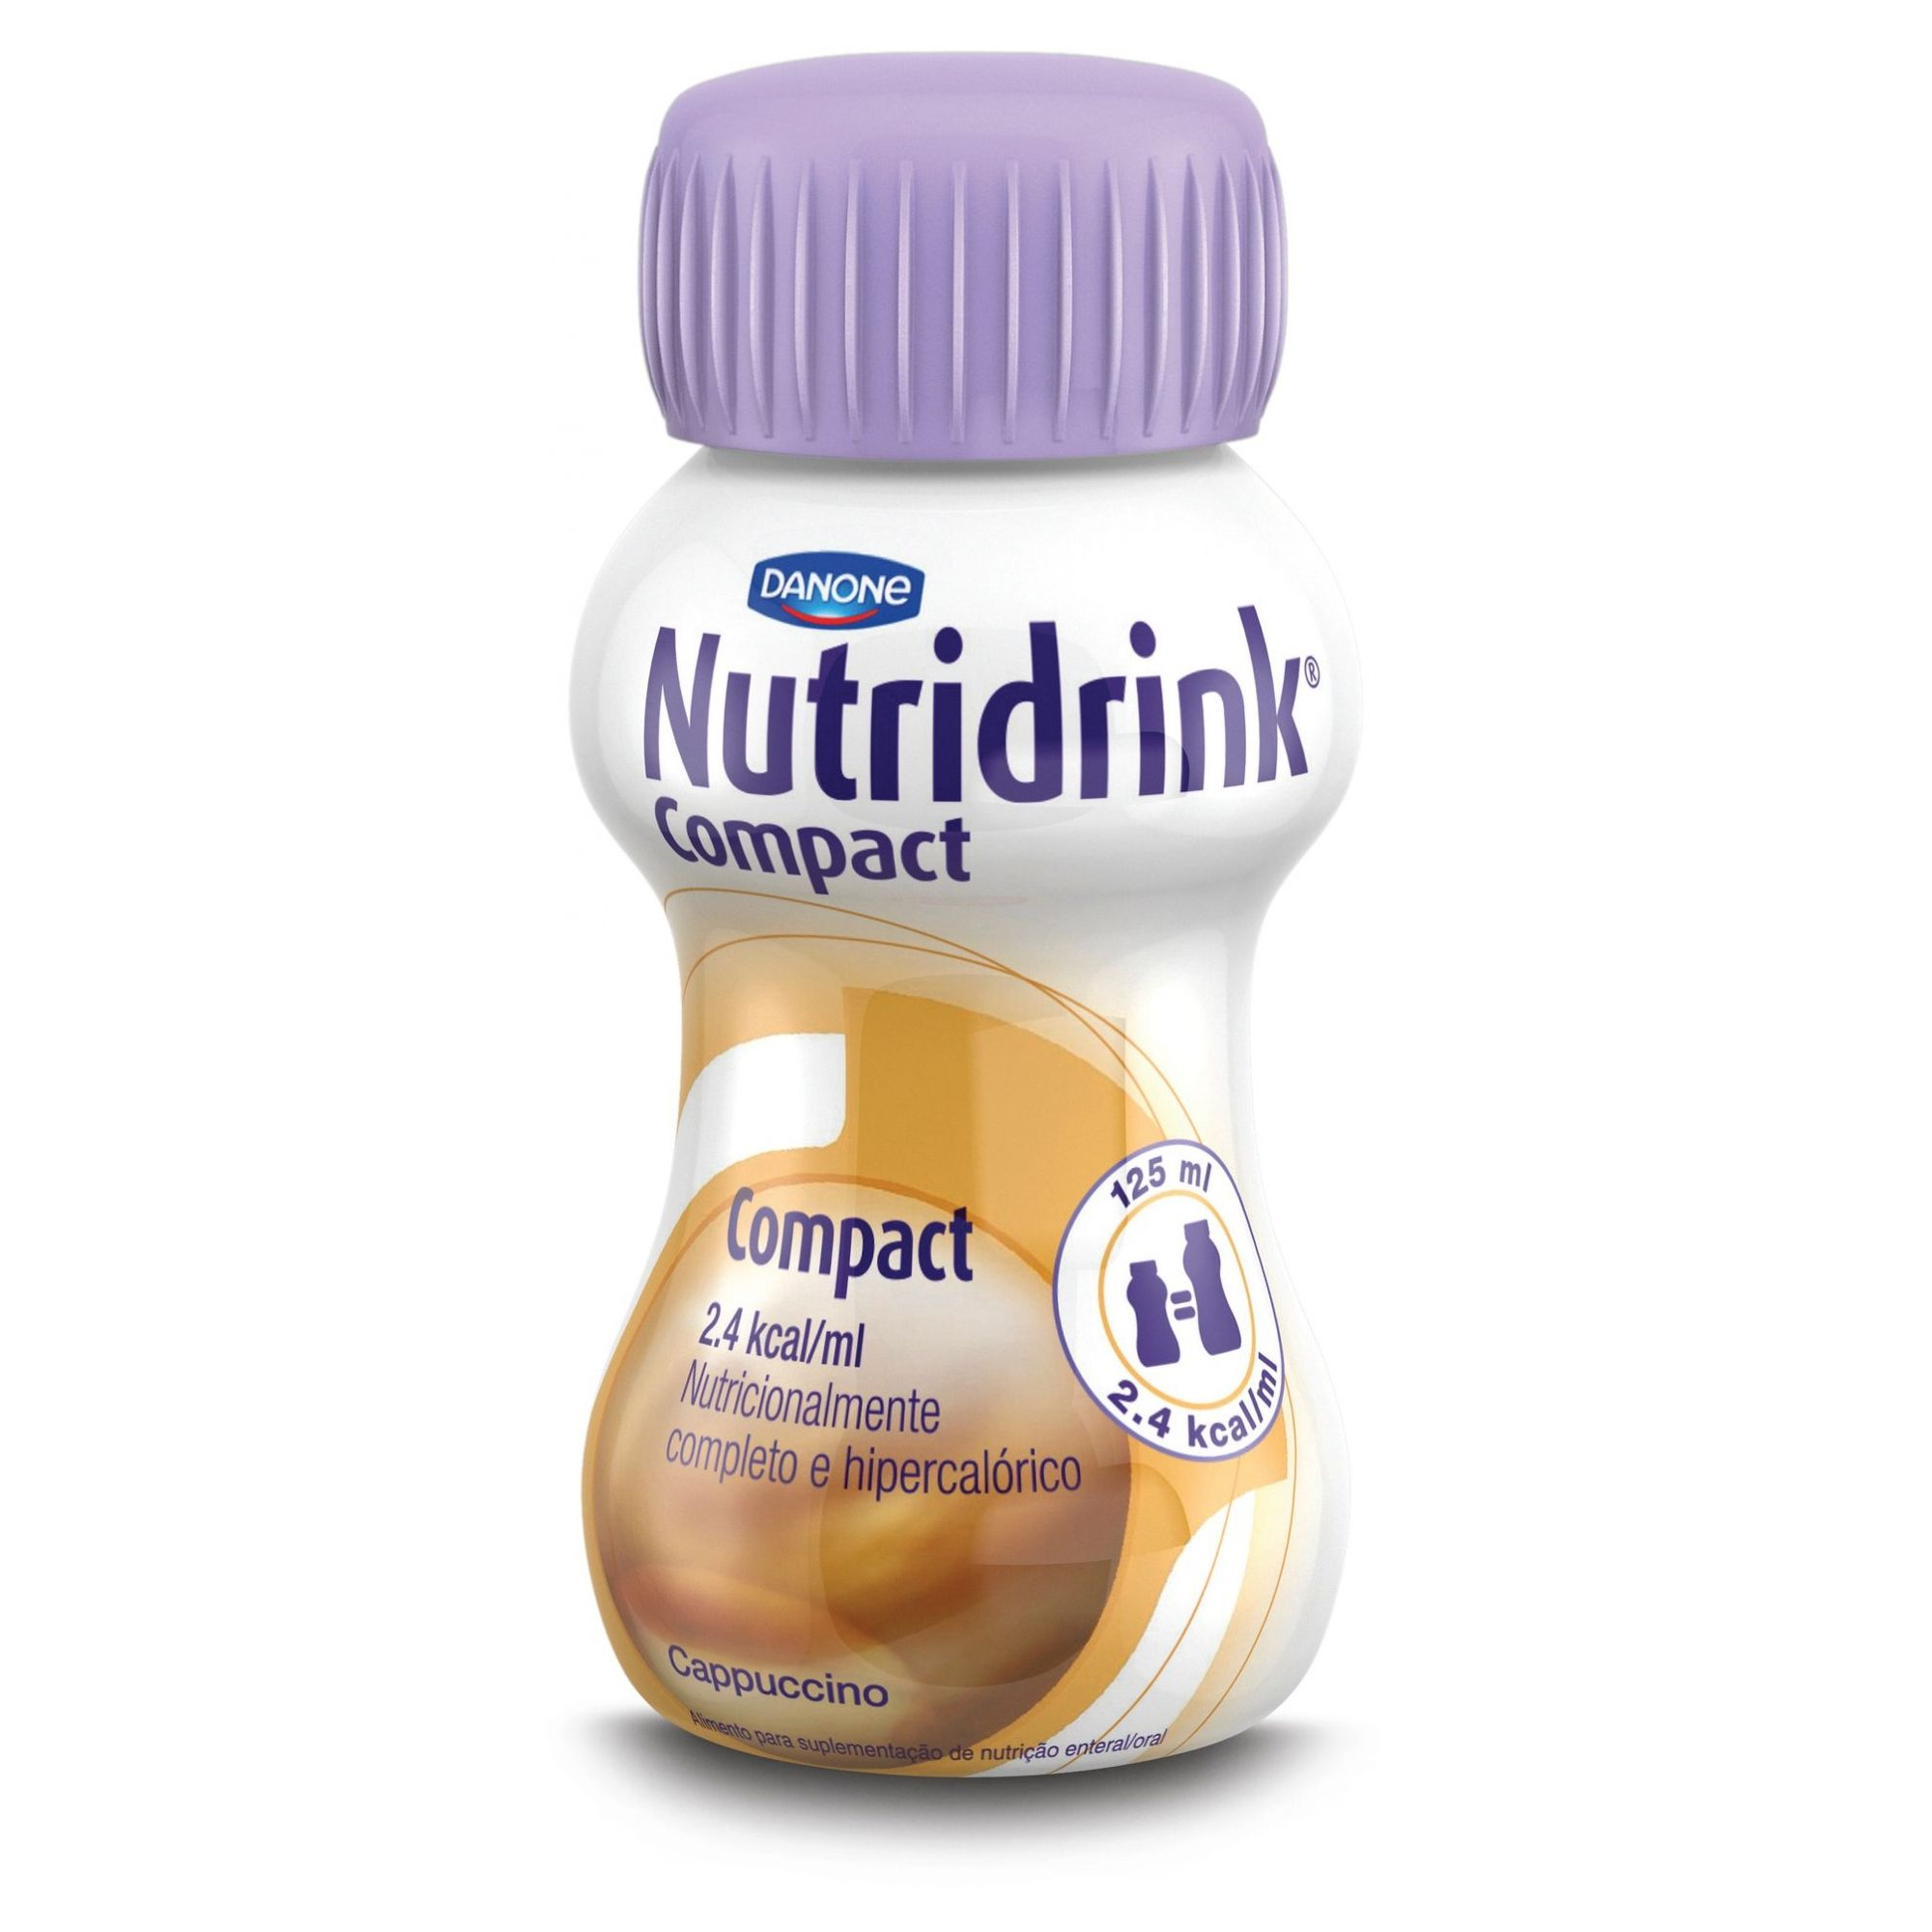 Nutridrink Compact Cappuccino - 125mL - (Danone)